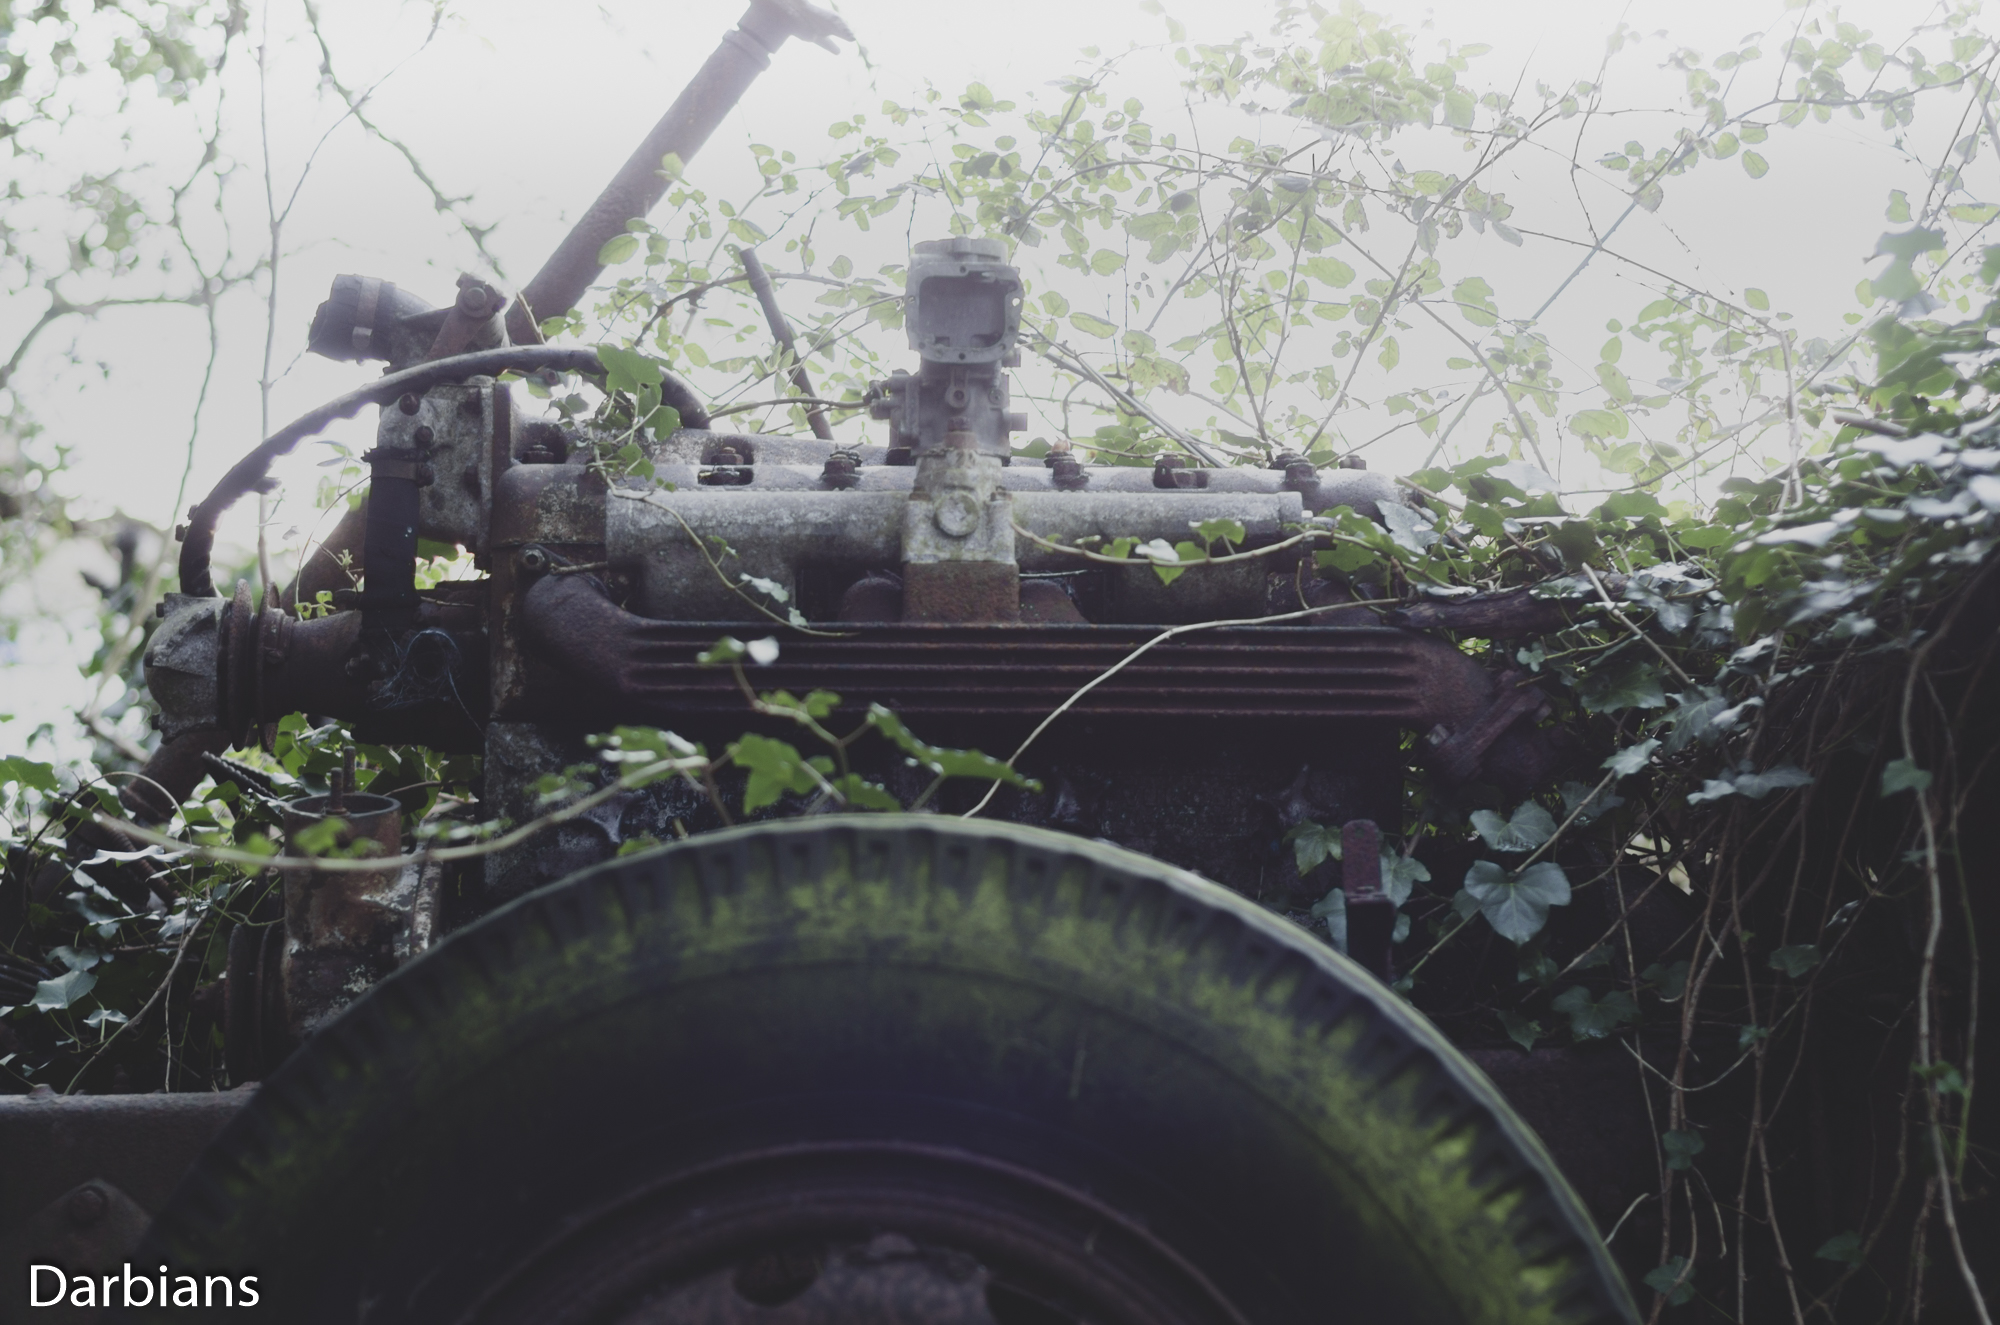 Duelly Graveyard: The engine was right below the driver.